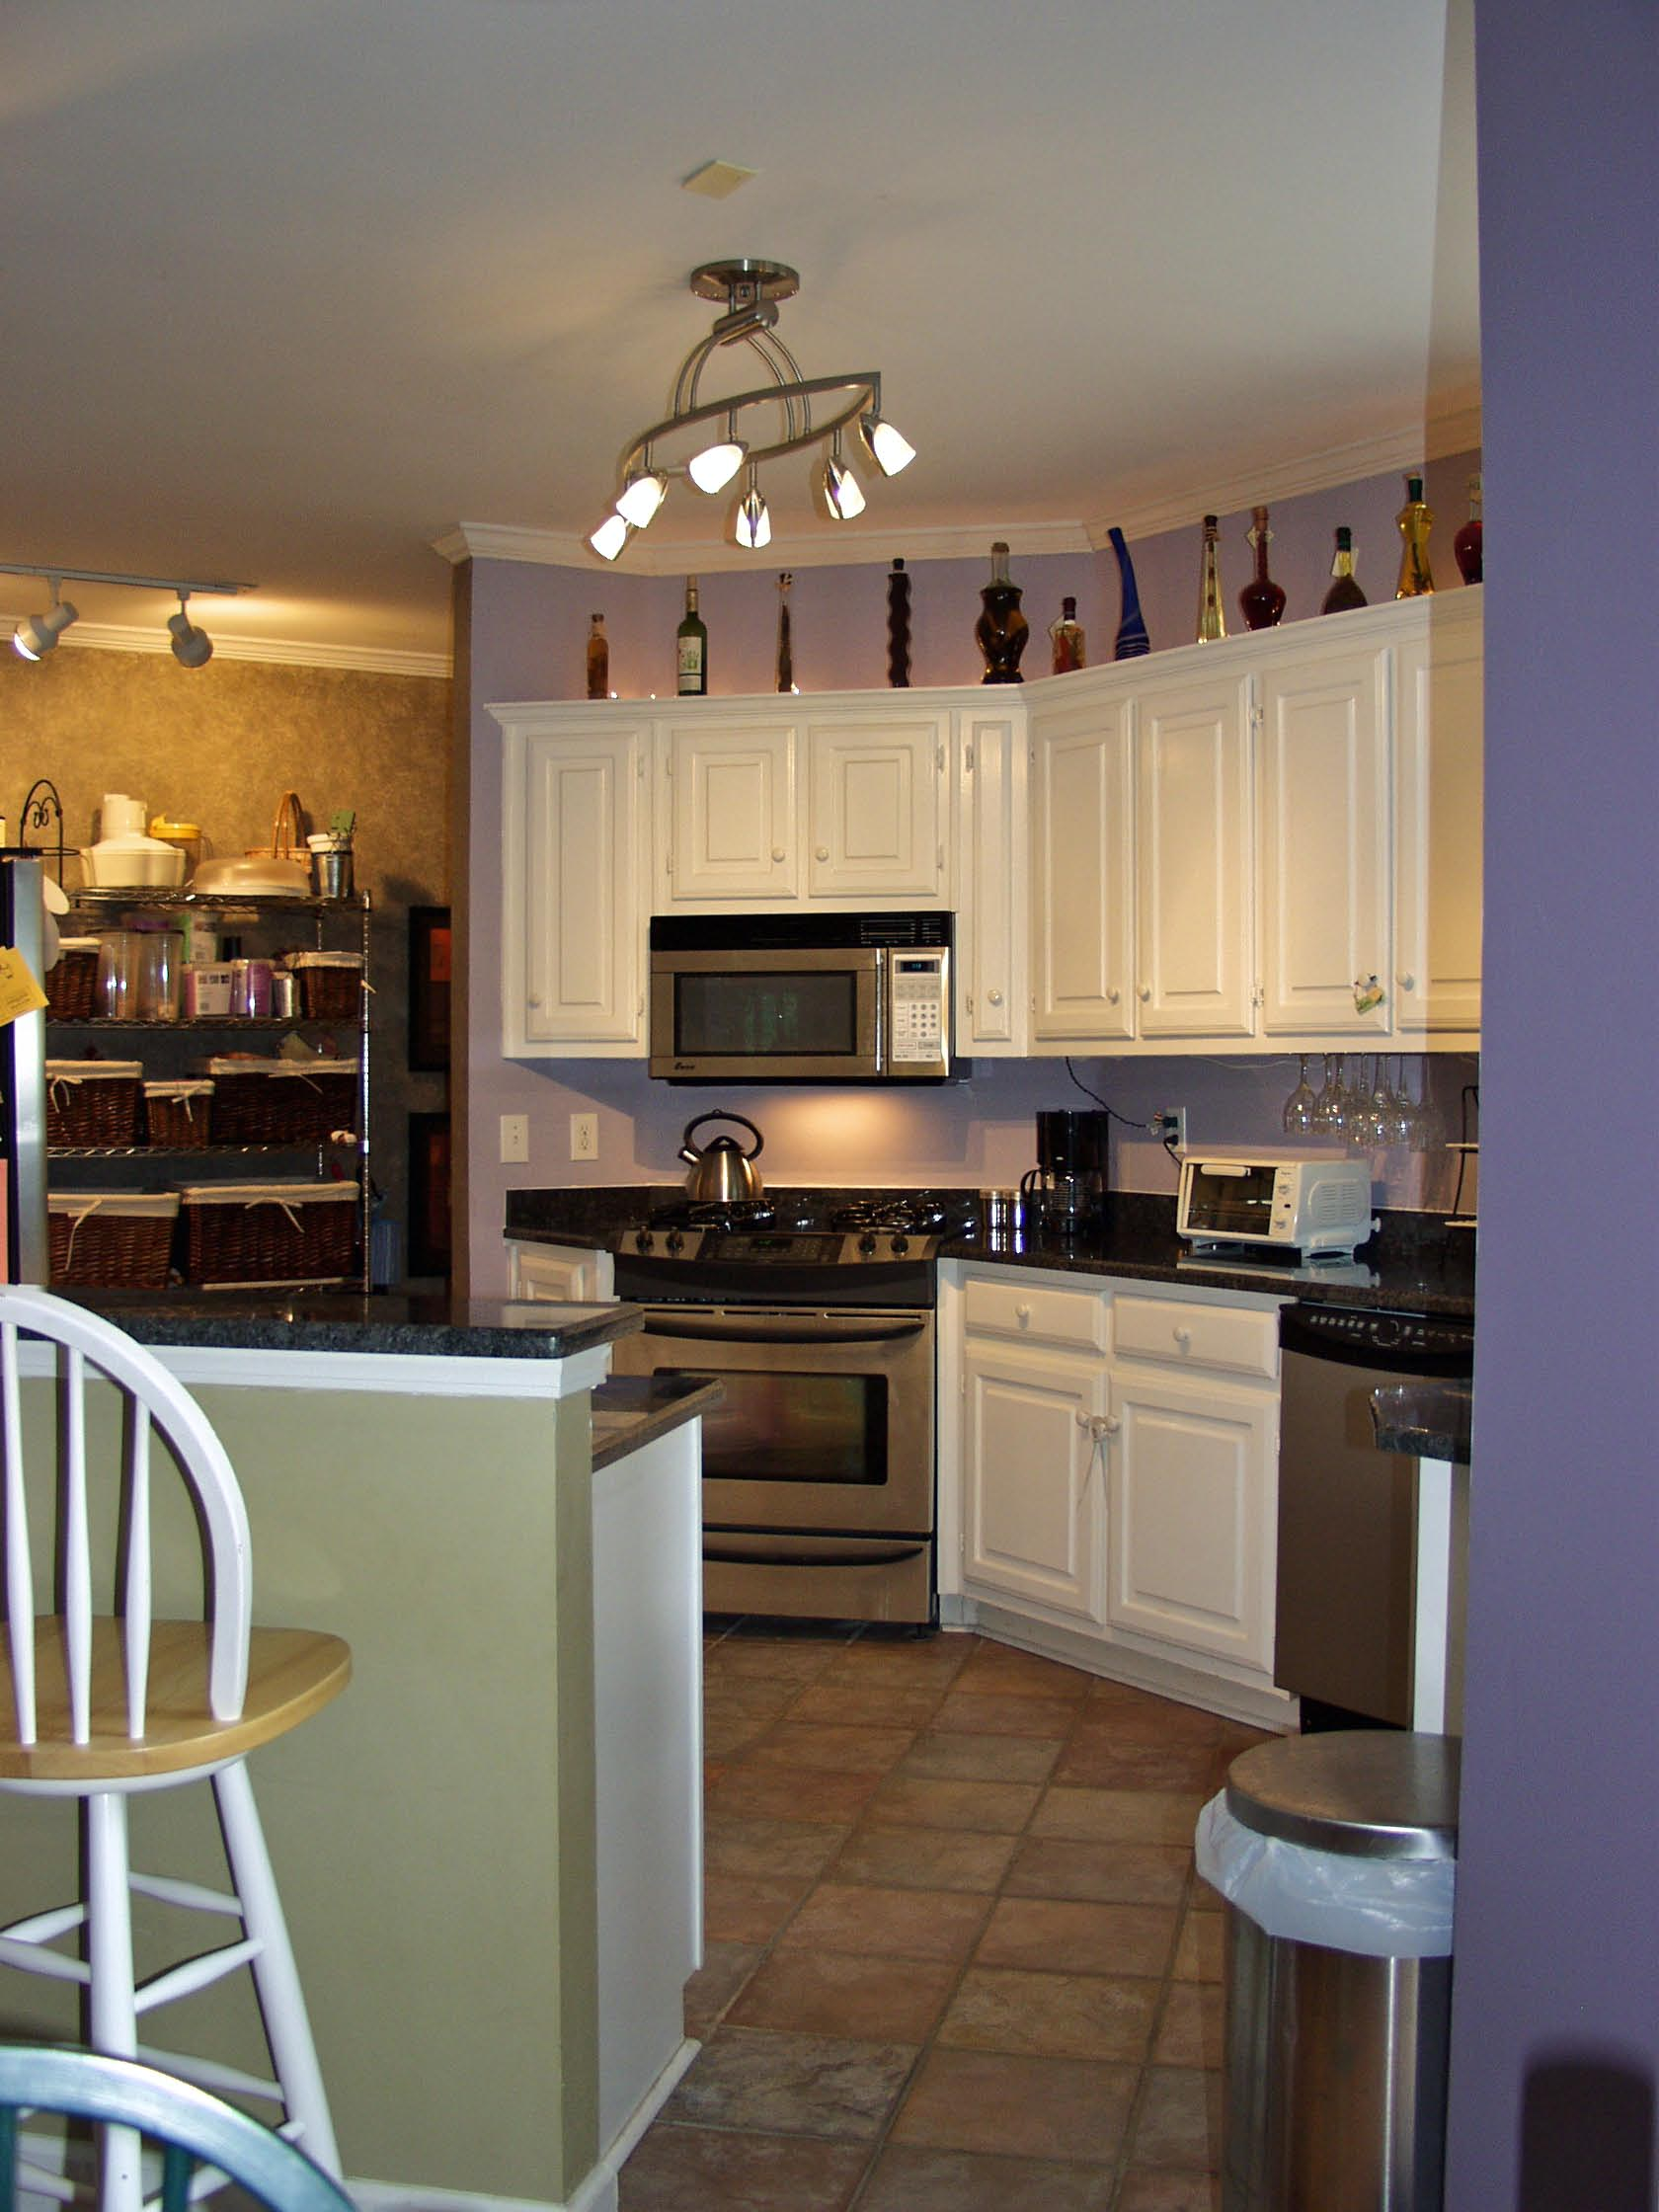 Beleuchtung Für Küche Lighting For Small Kitchens With Pendant And Under Cabinet